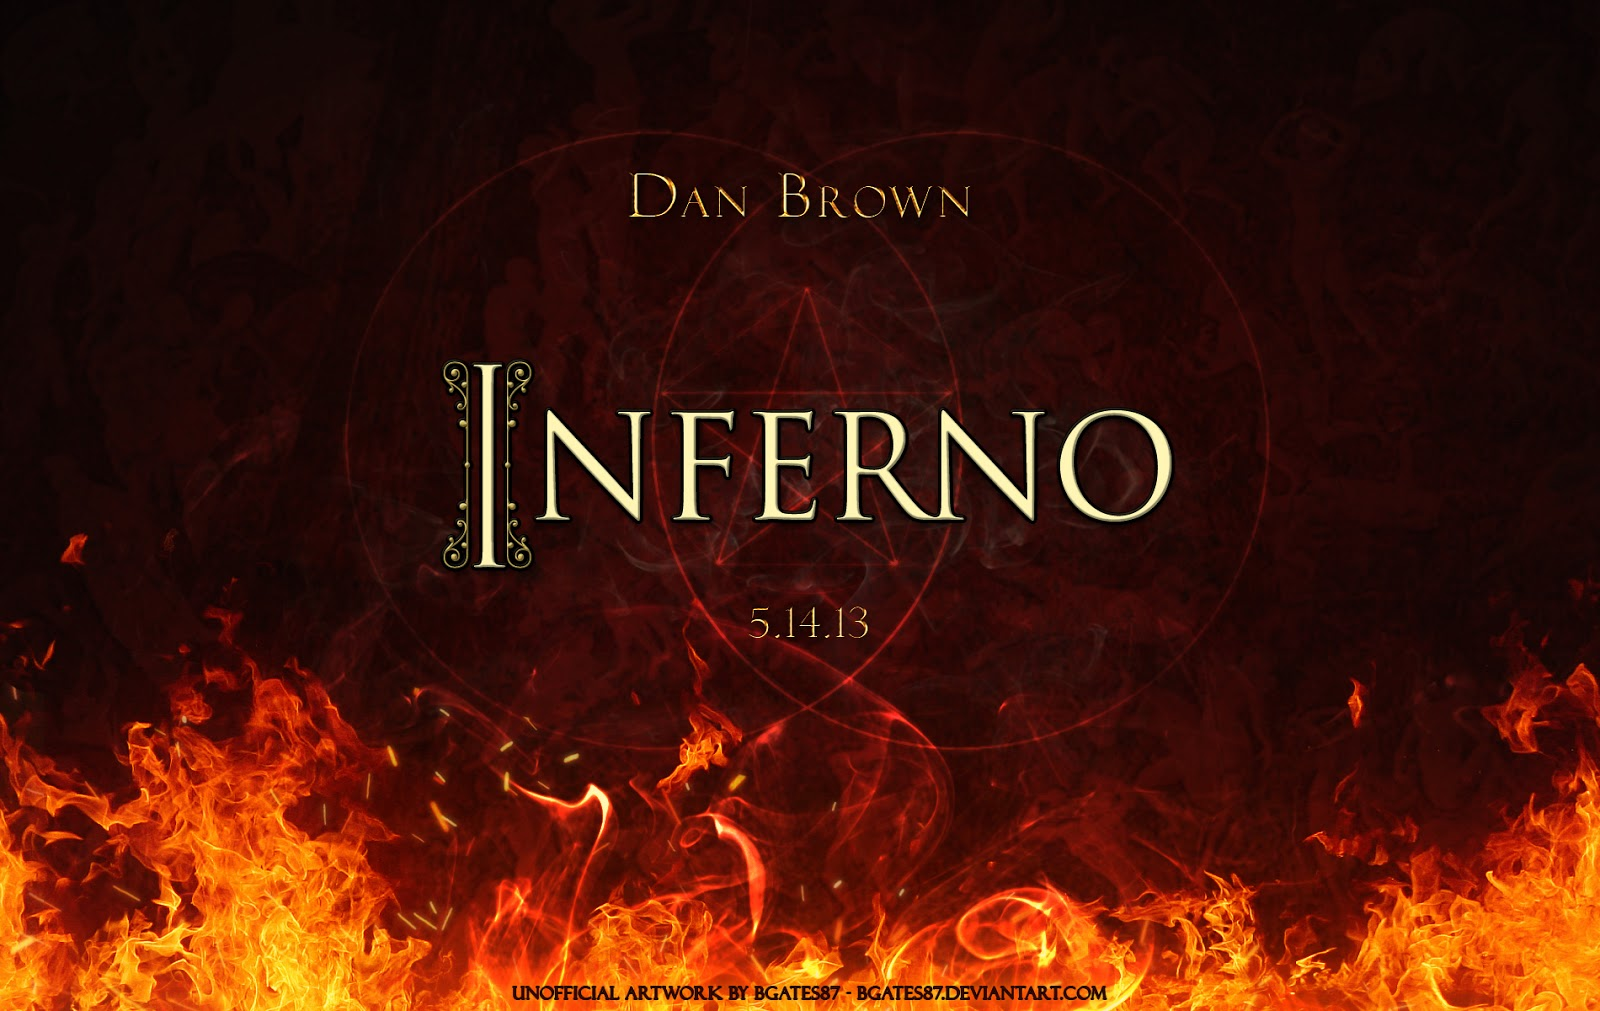 http://1.bp.blogspot.com/-CshRvD010V4/UYzZEQ0GS5I/AAAAAAAABRQ/nNbXU-wk69A/s1600/Inferno+by+Dan+Brown+Download+Free+Ebook.jpg